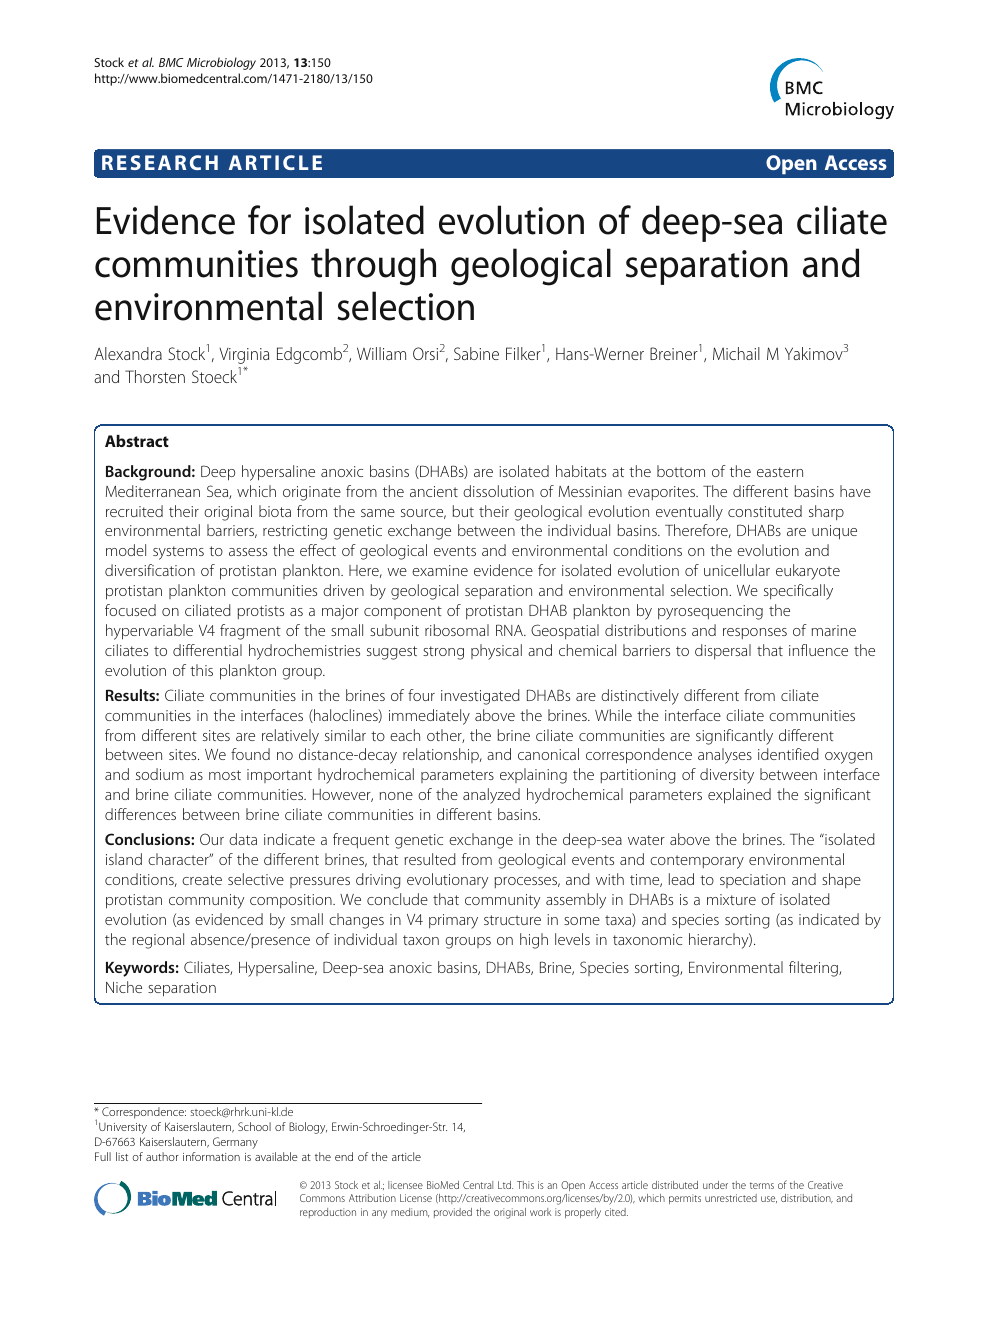 Evidence for isolated evolution of deep-sea ciliate